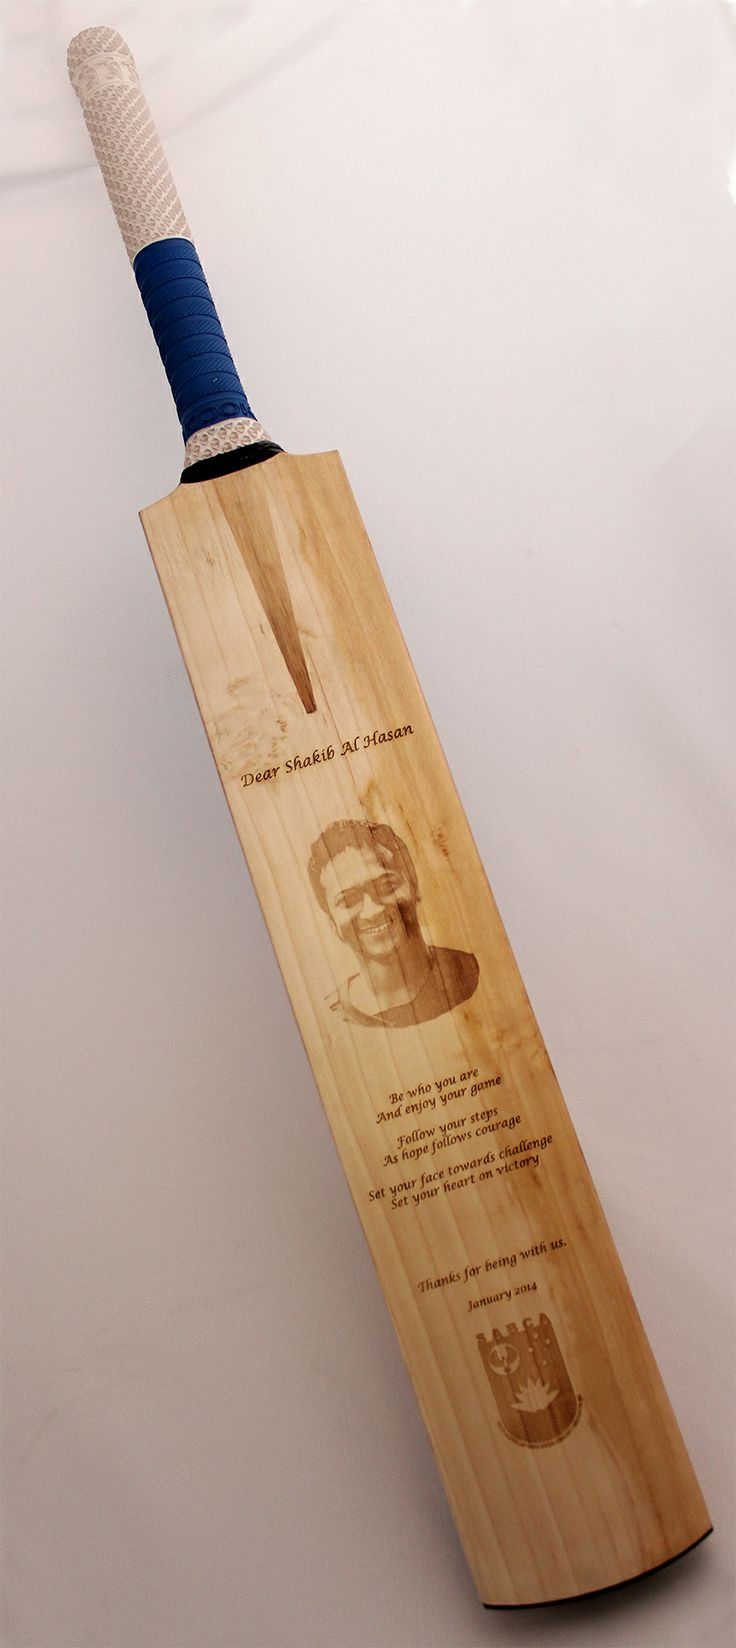 A photo engraved cricket bat we created for SABCA to give to international all rounder Shakib Al Hasan